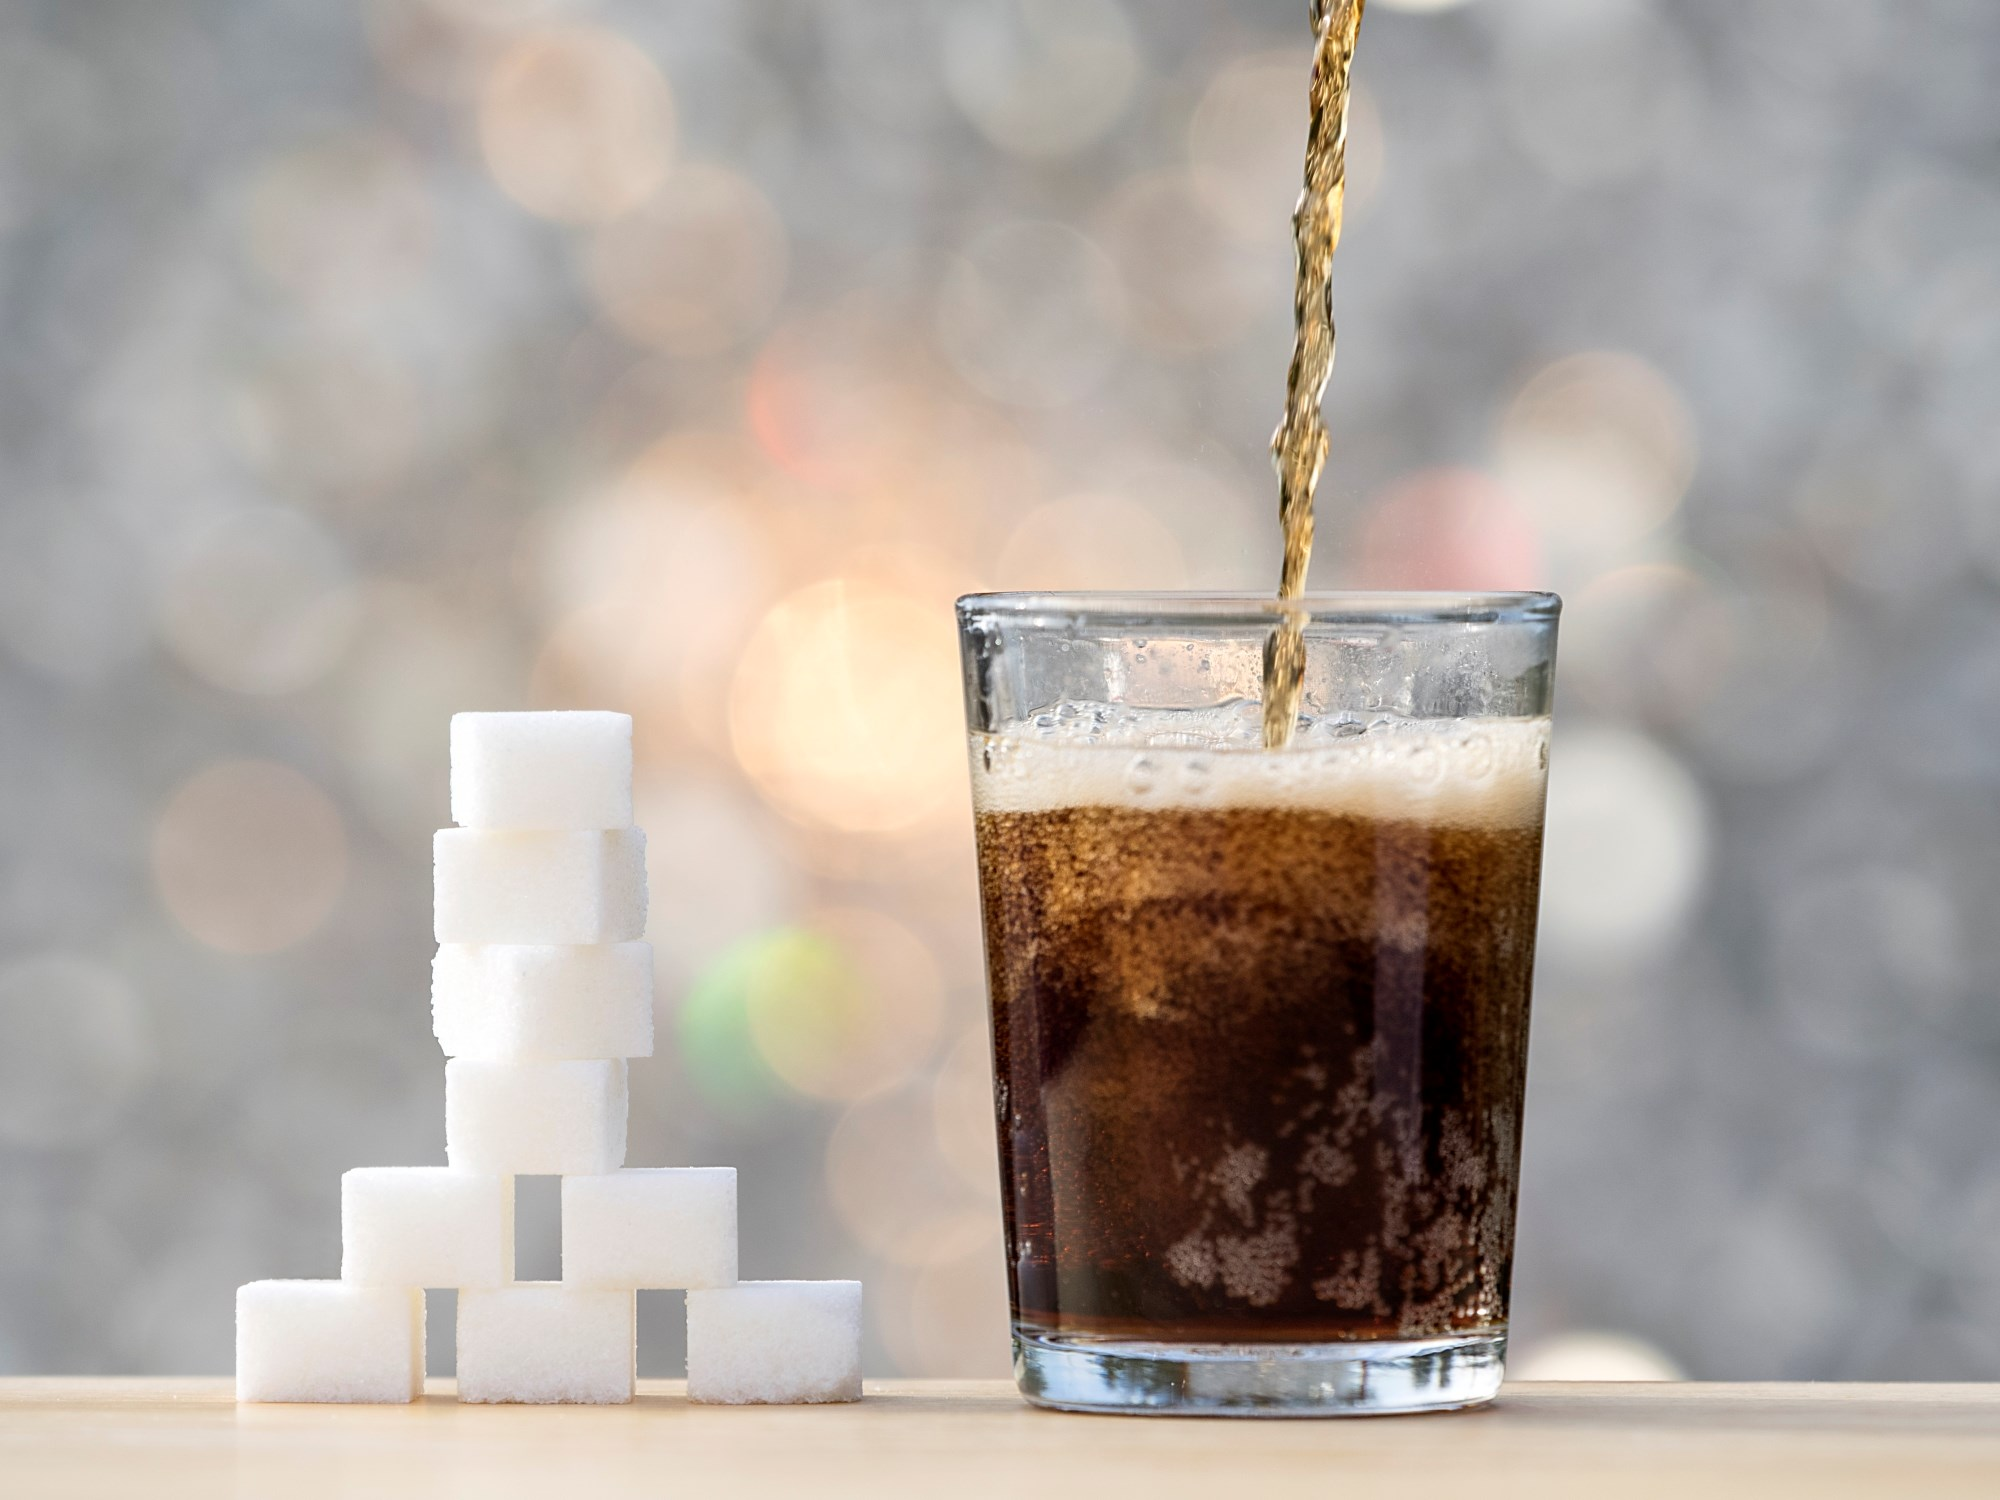 Physicians are encouraged to counsel their patients about the health consequences of consuming sugar-sweetened beverages.